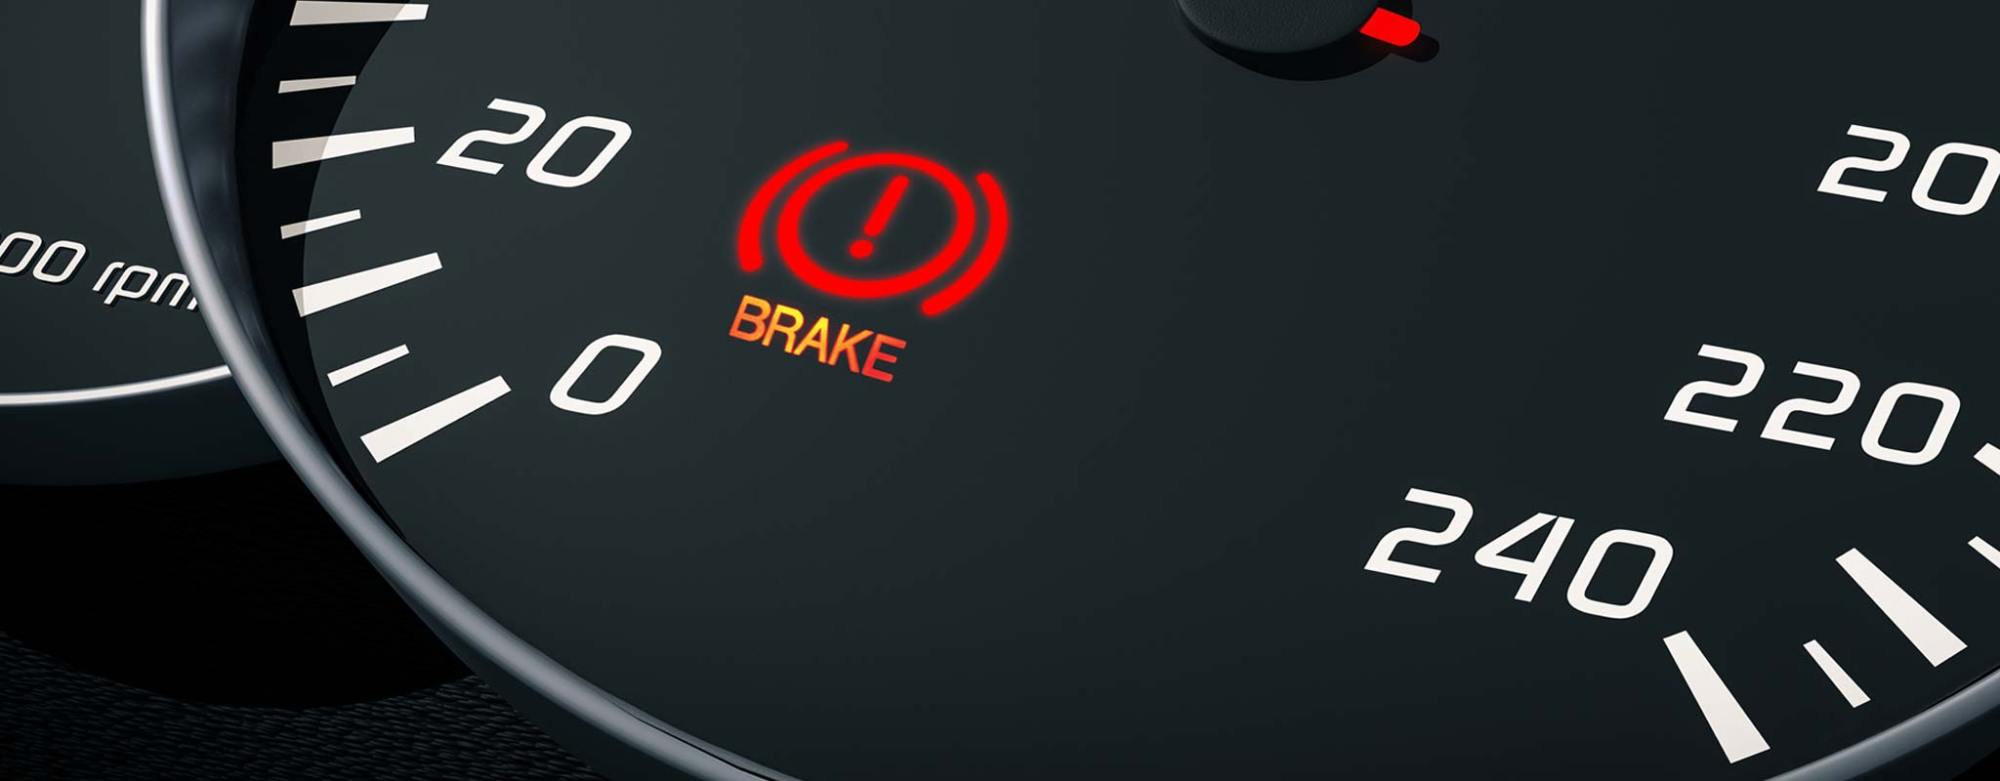 hight resolution of what do dashboard brake lights mean